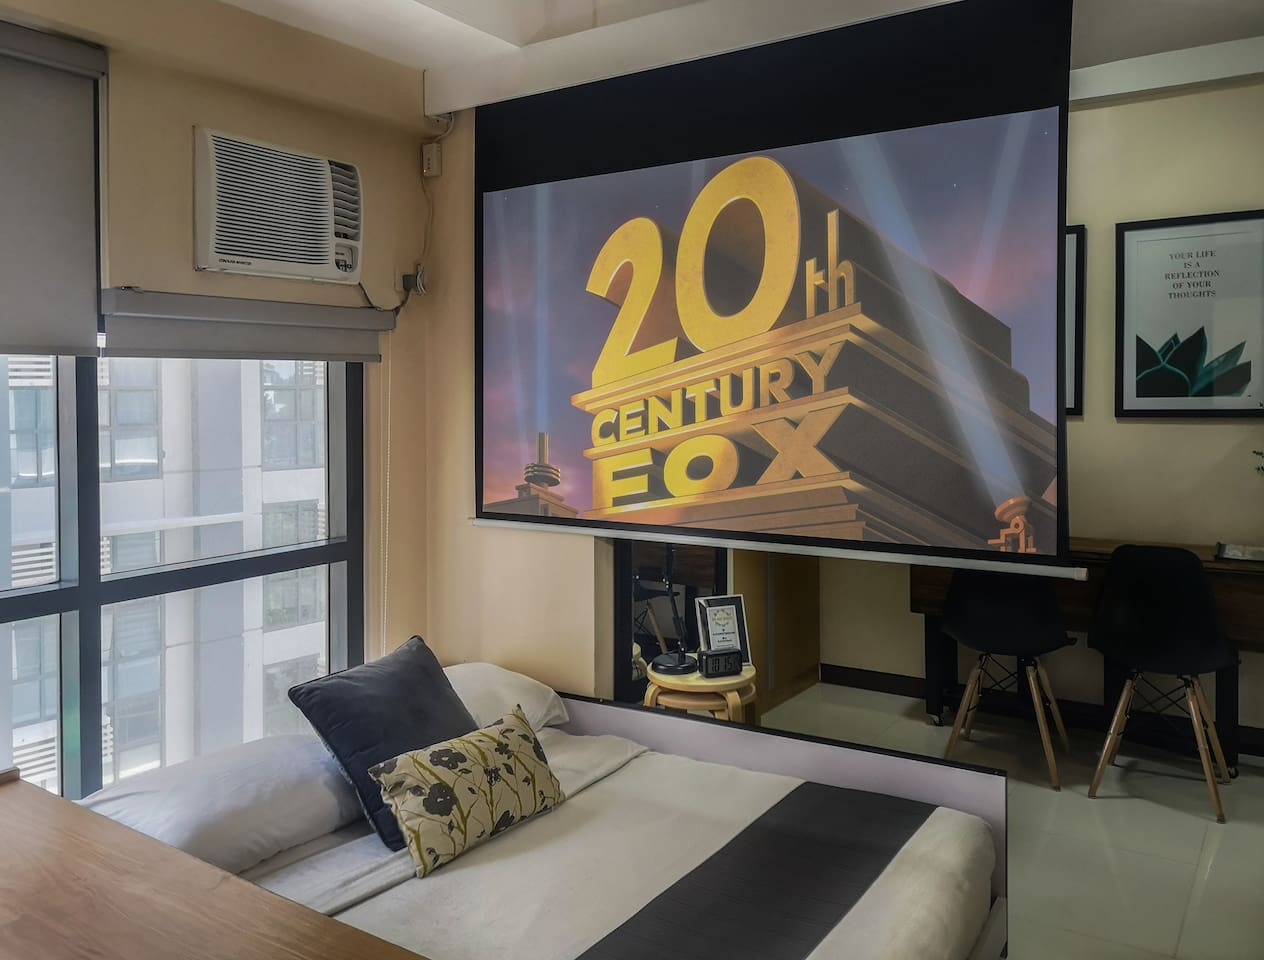 Explore BGC by day and relax with your own cinema at night